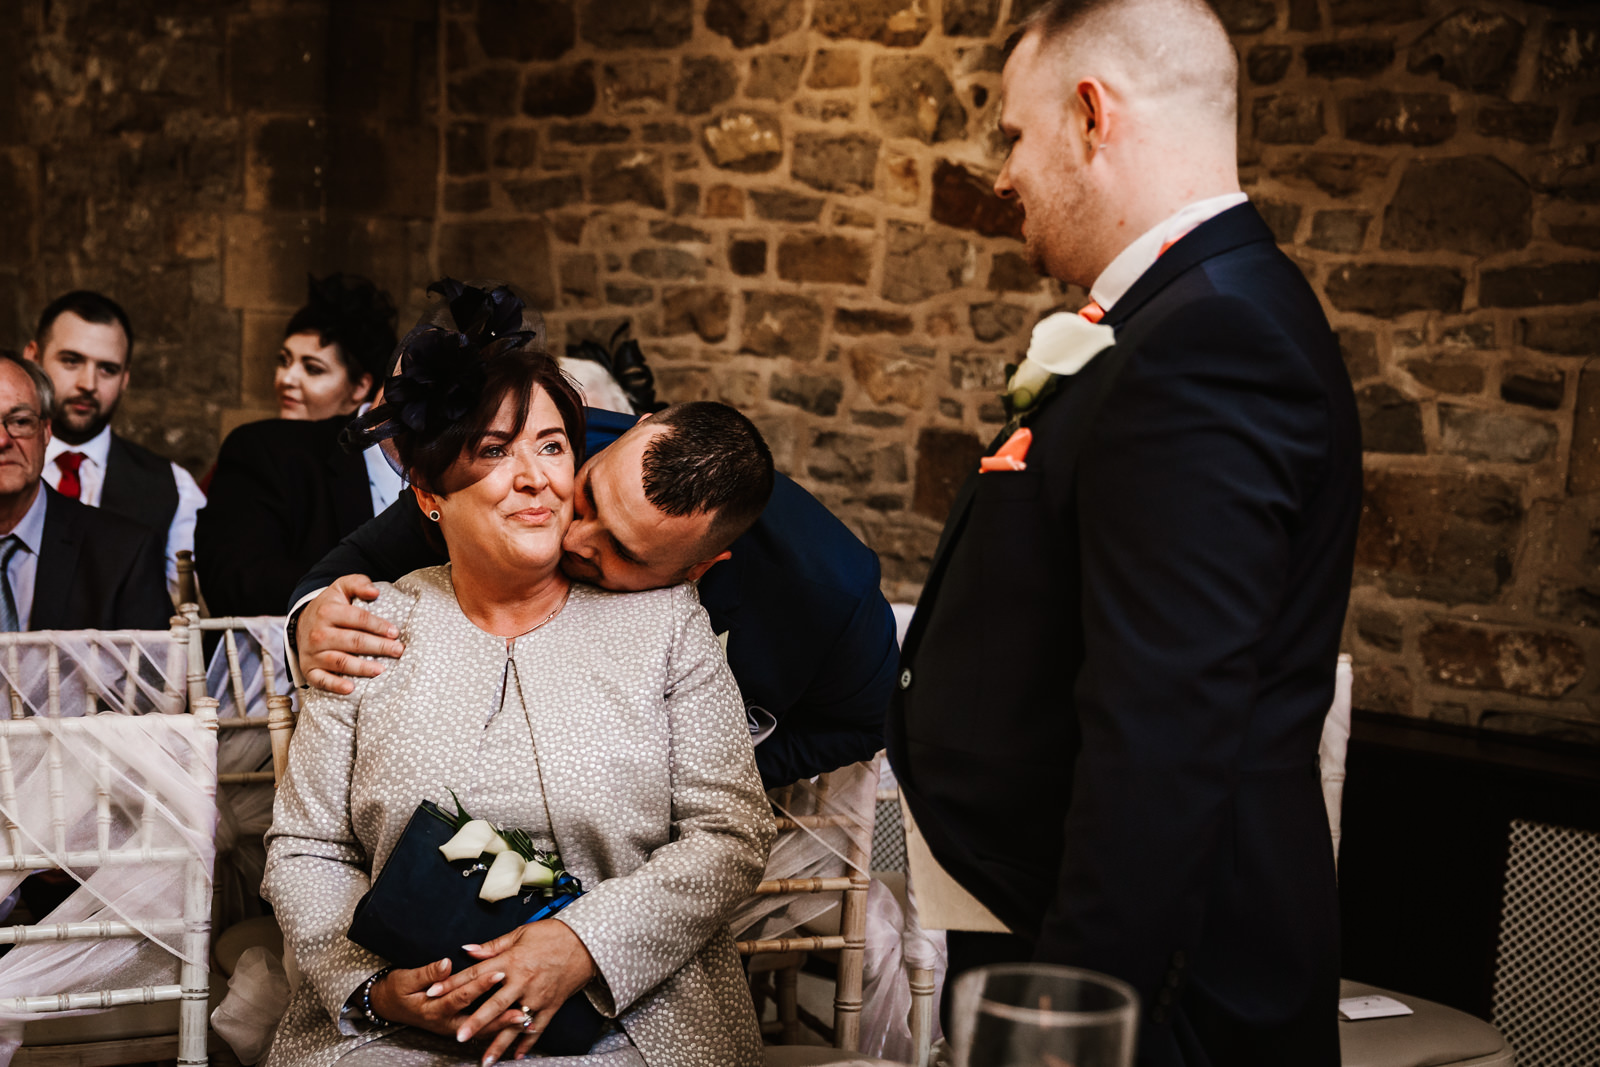 Kiss for the mother of the bride